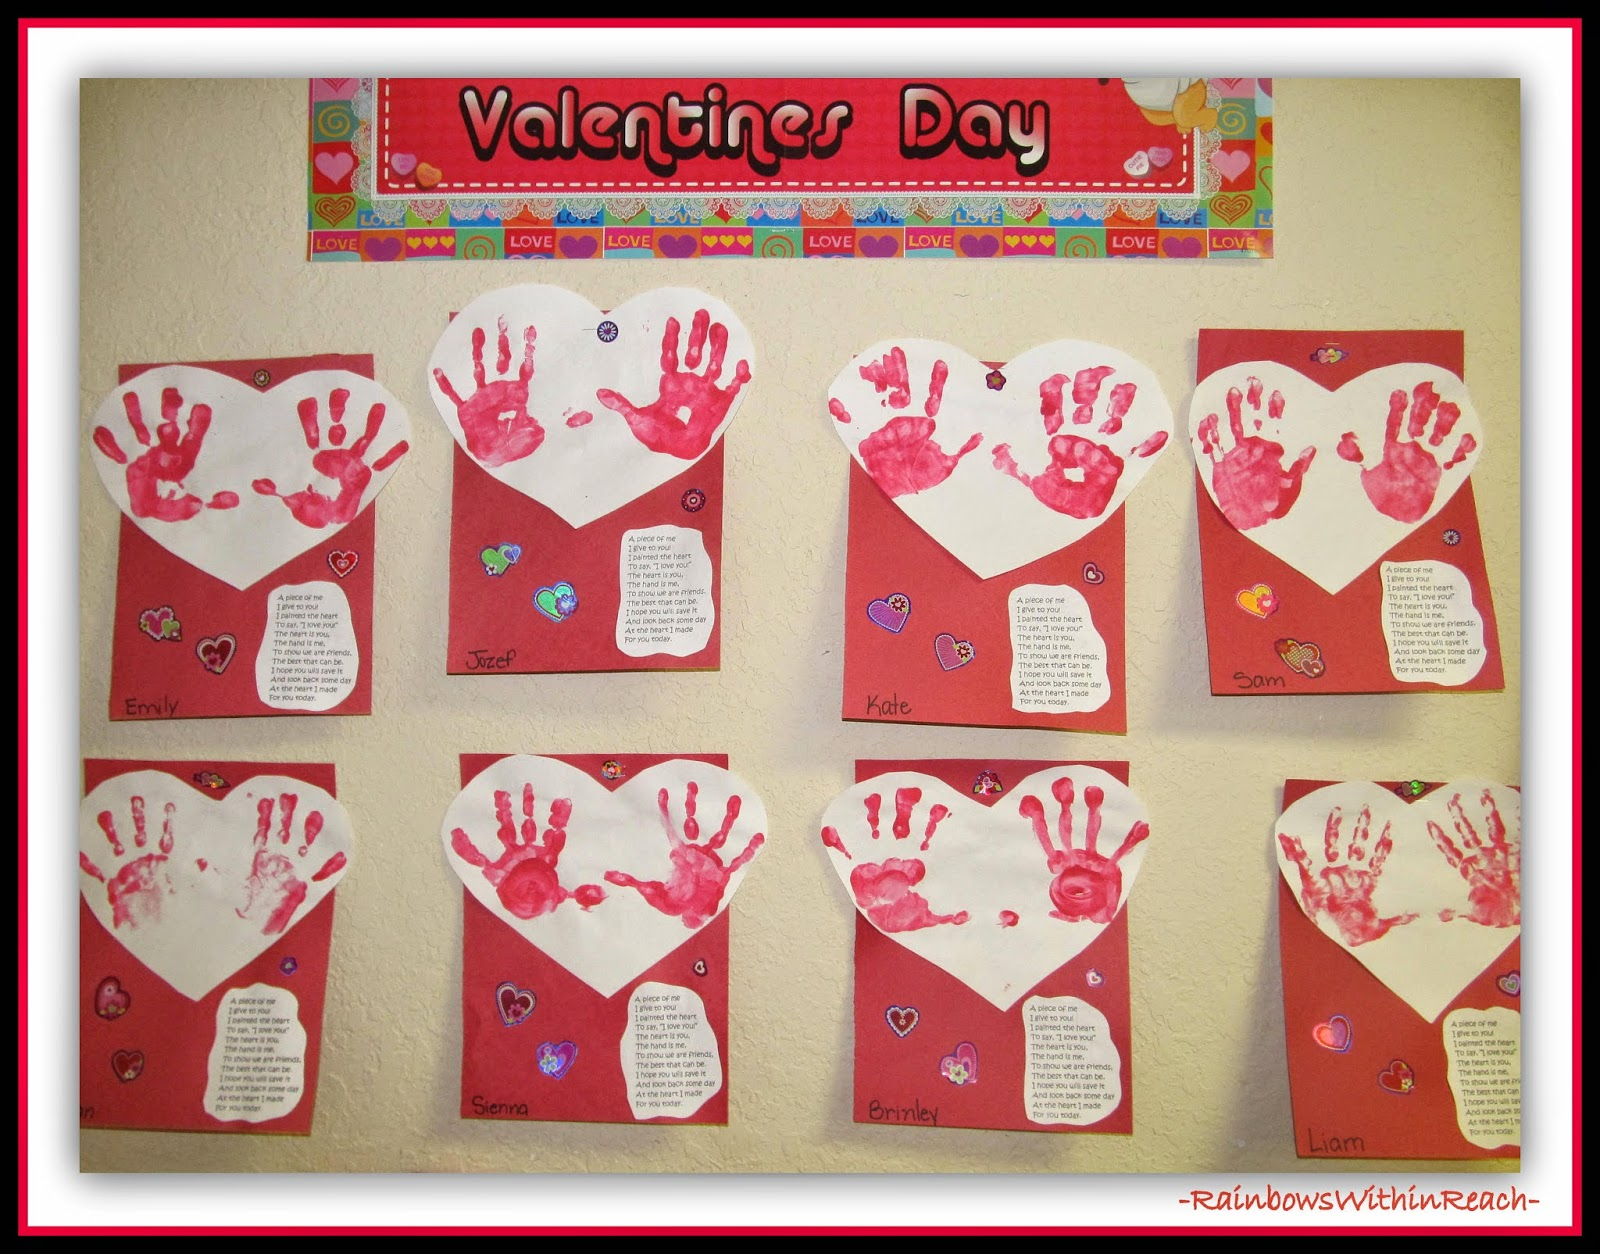 Valentineu0027s Day Bulletin Board With Painted Hand Prints Via  RainbowsWithinReach